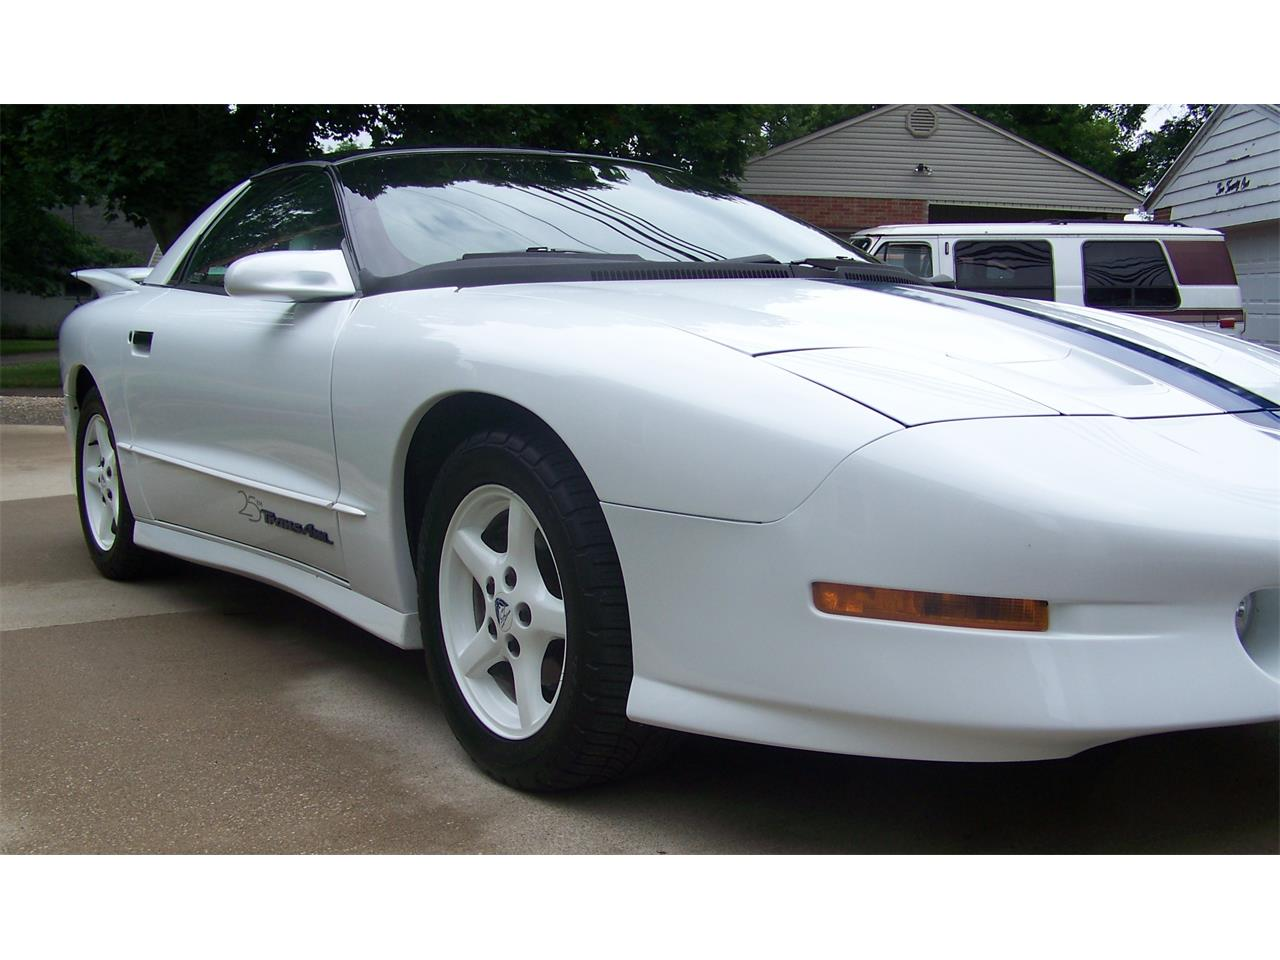 Large Picture of 1994 Pontiac Firebird Trans Am located in Ohio - $17,500.00 Offered by a Private Seller - NOQC